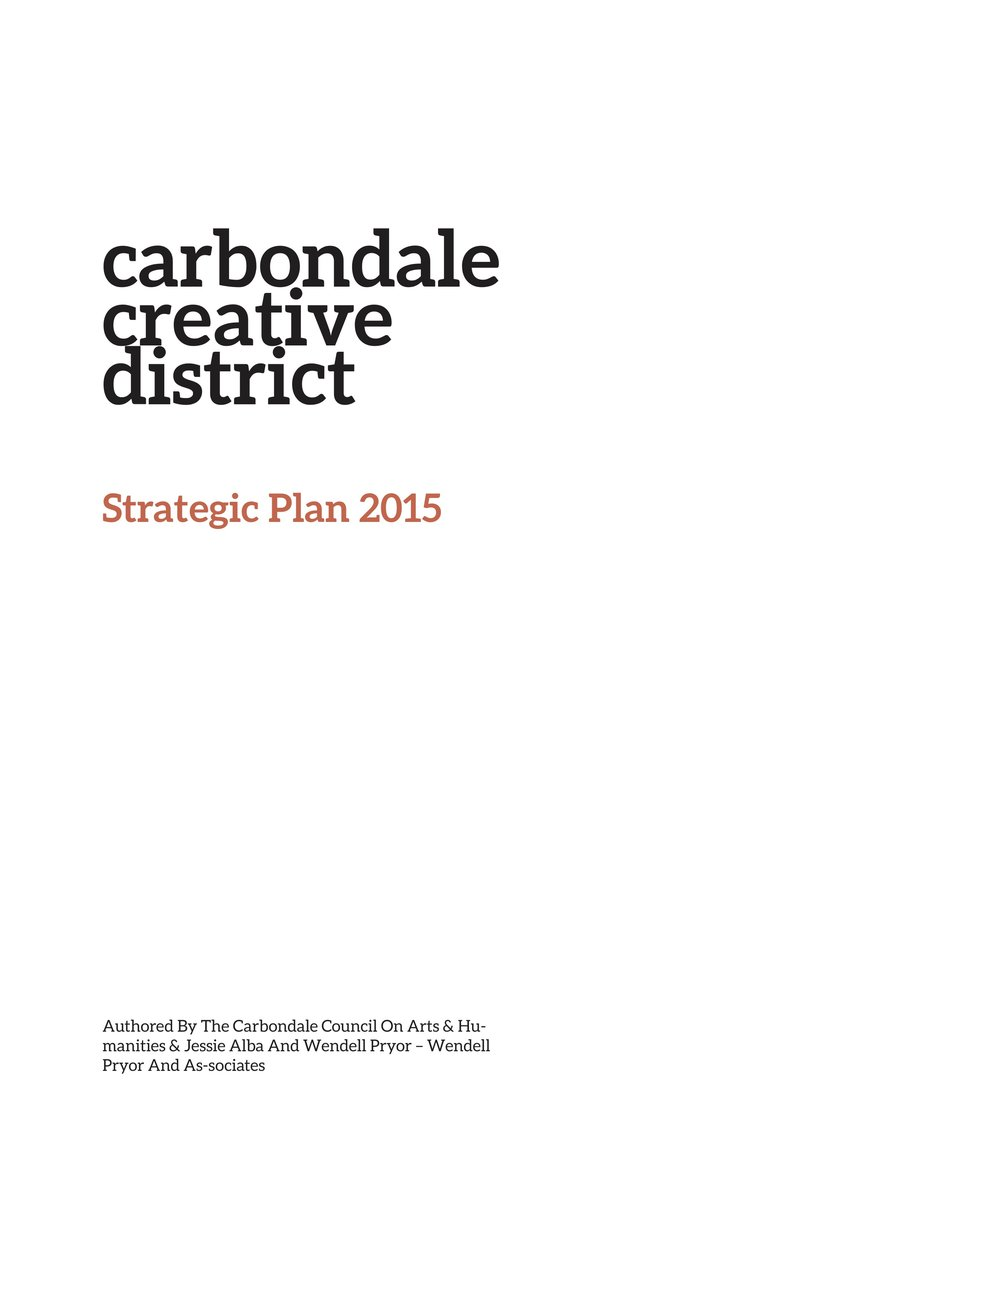 Carbondale Creative District Strategic Plan -